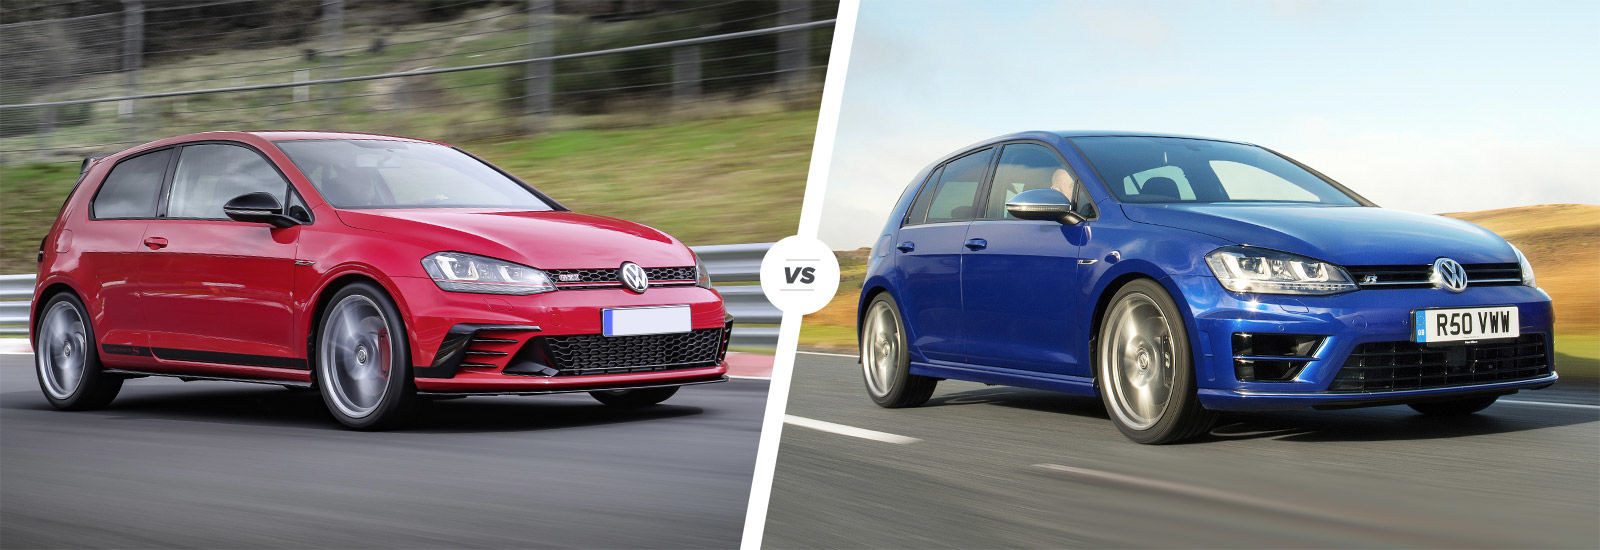 vw golf gti clubsport s vs golf r comparison carwow. Black Bedroom Furniture Sets. Home Design Ideas